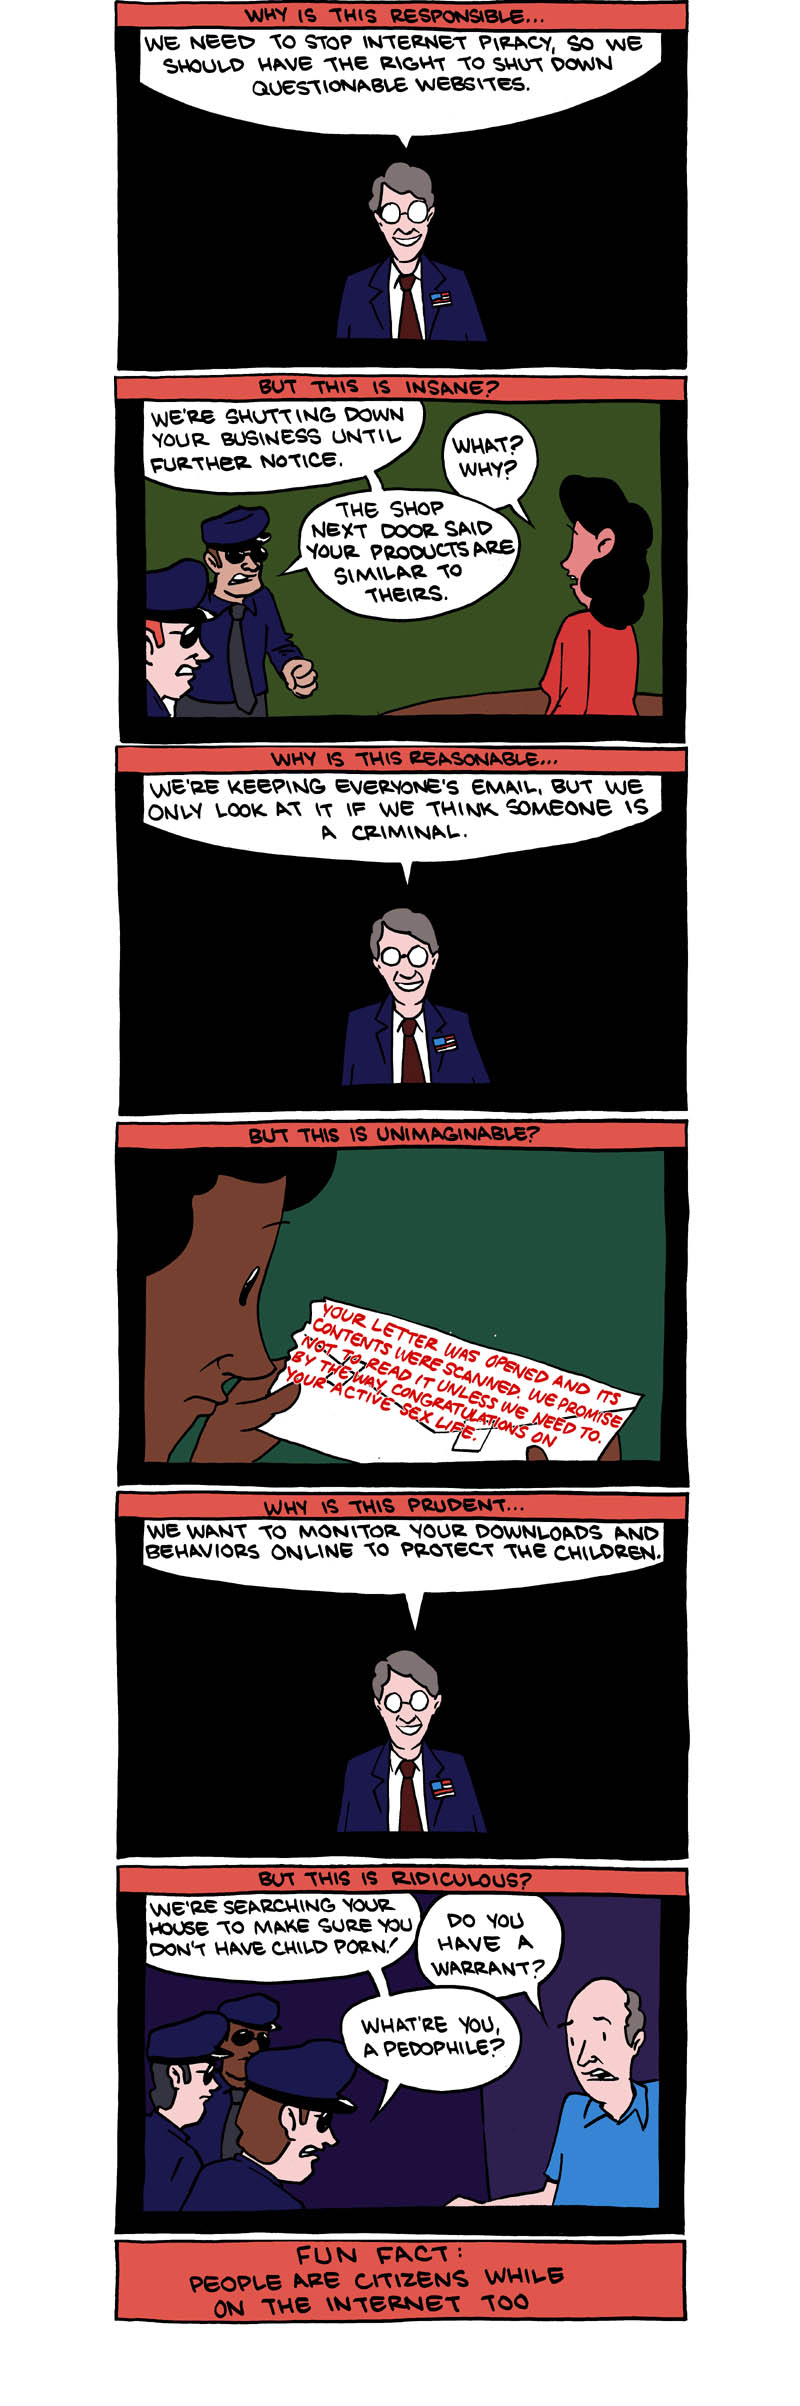 people are citizens on the internet too comic strip smbc Citizens on the Internet [Comic Strip]